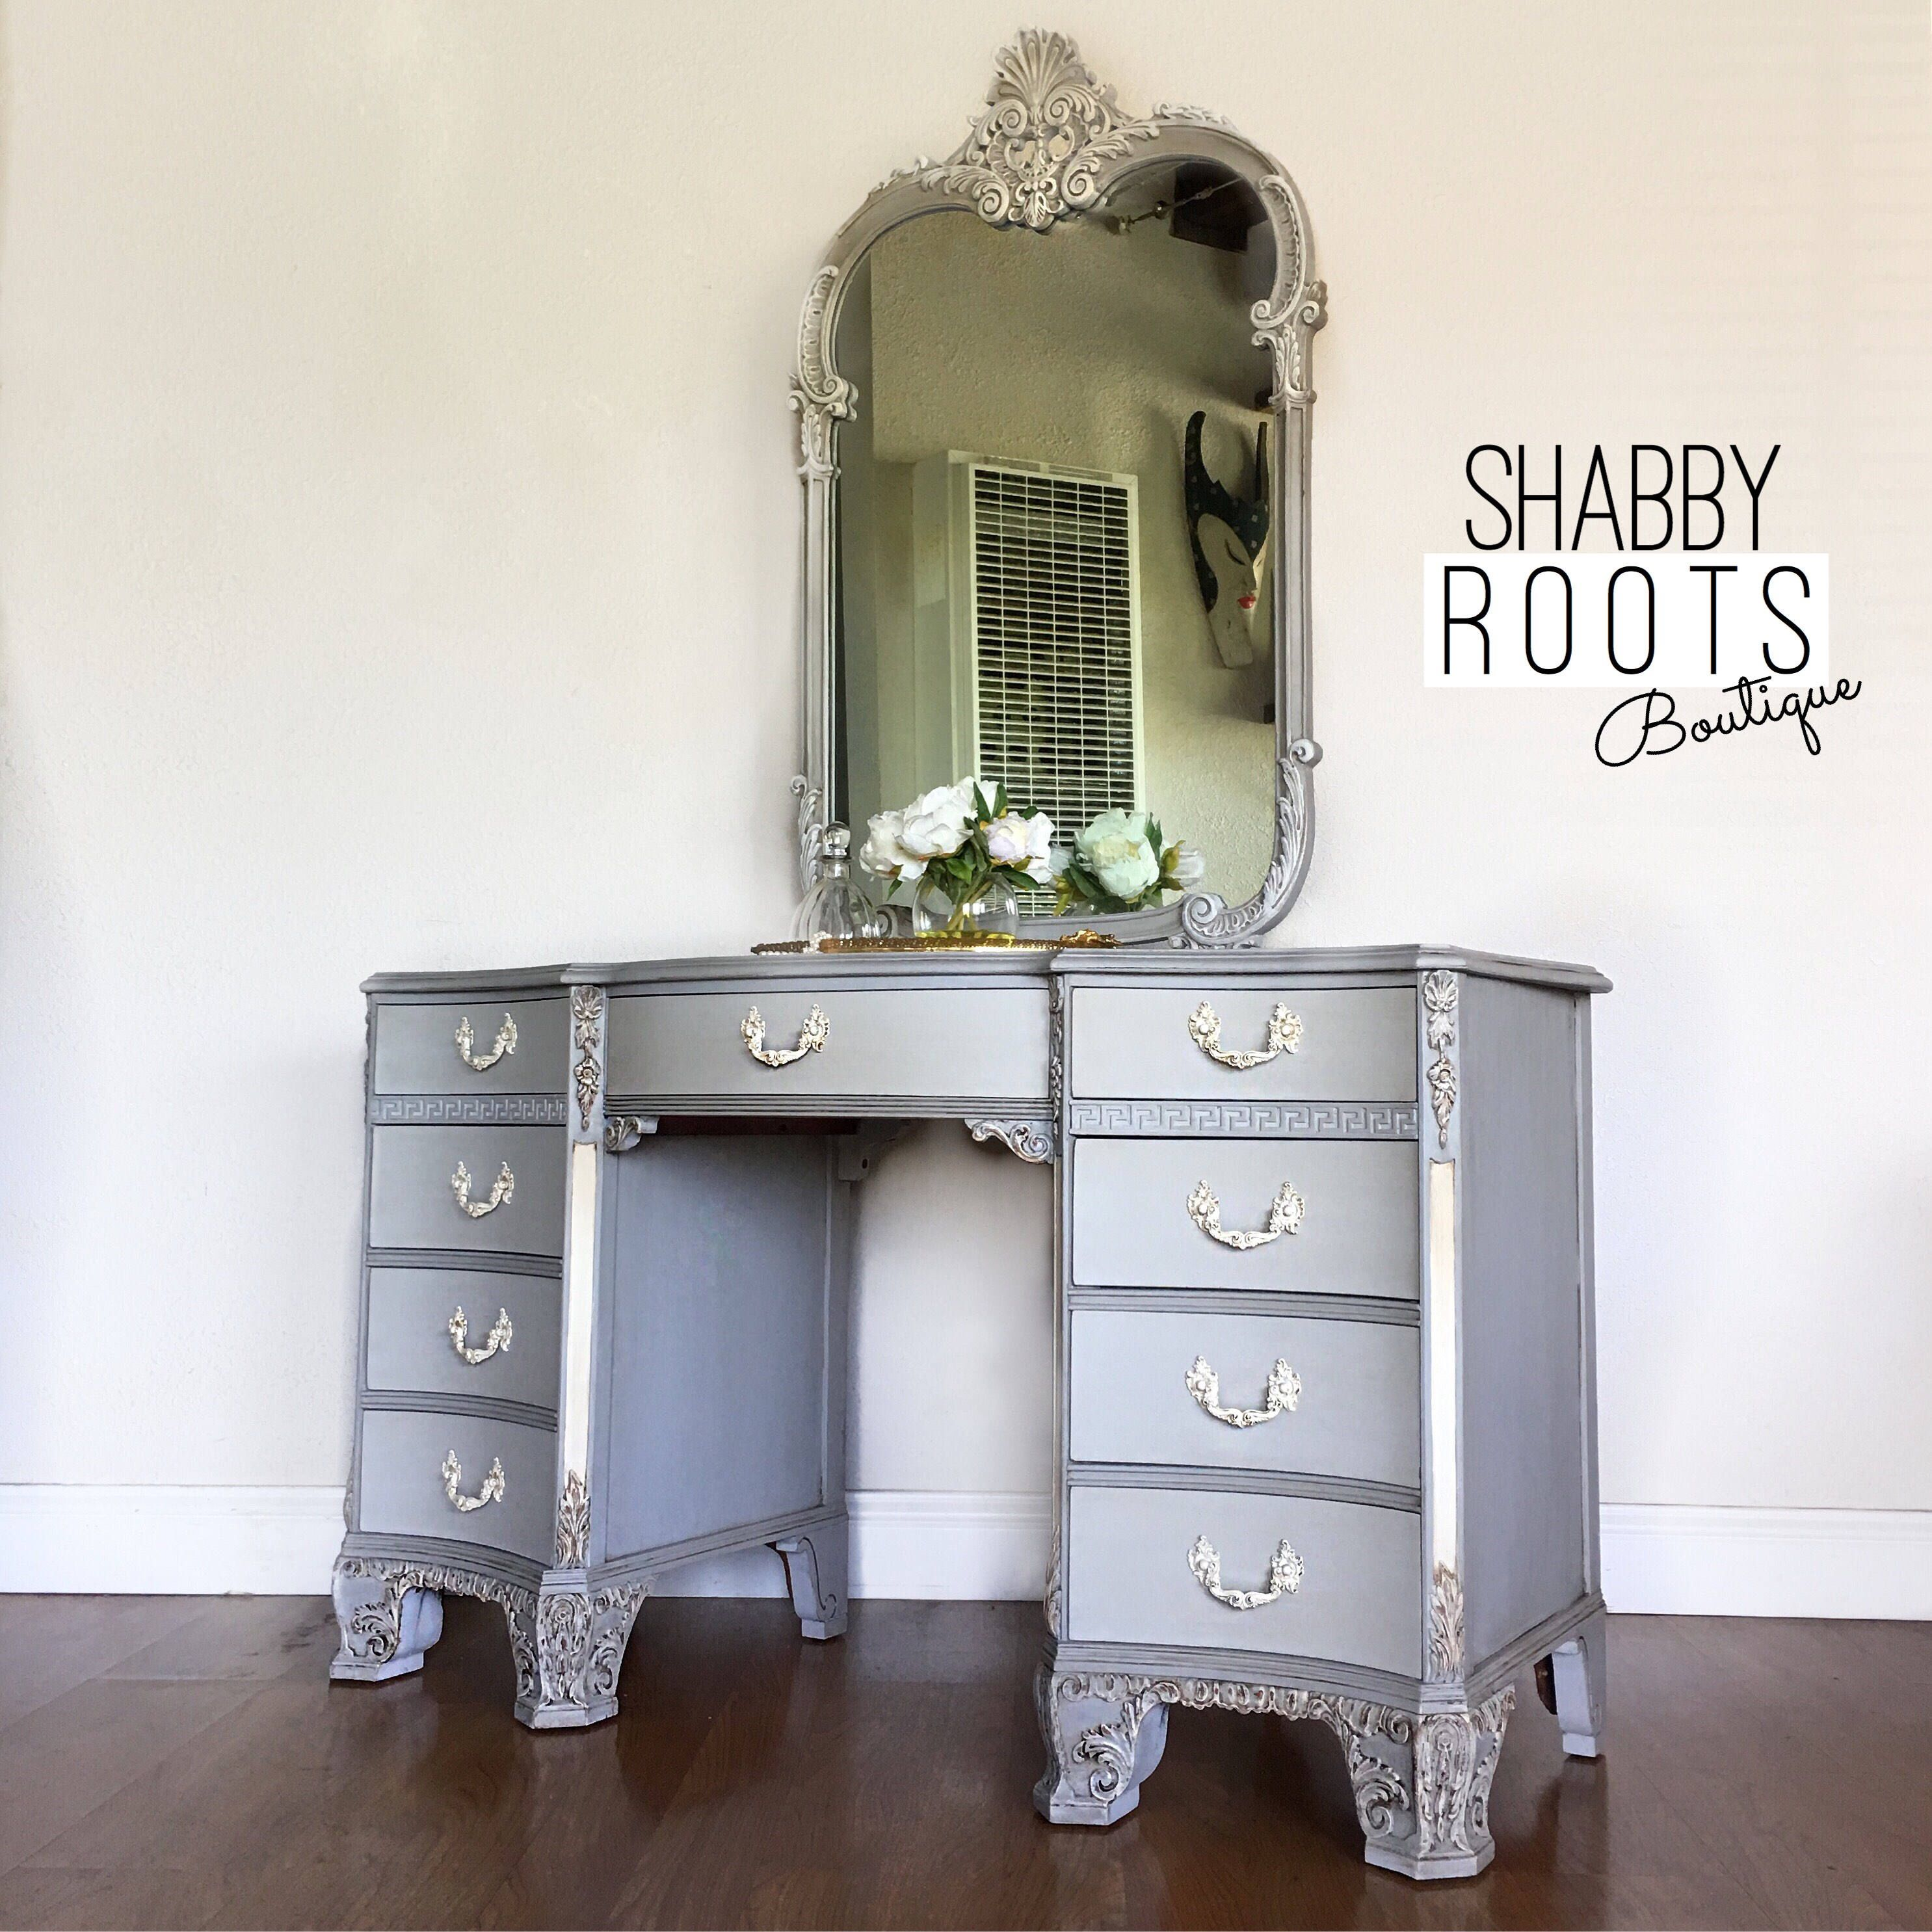 New Antique Vanity Light Grey Shabby Chic French Vintage Dresser Makeup Vanity Solid Wood Gorgeous San Shabby Chic Dresser Black Shabby Chic Shabby Chic